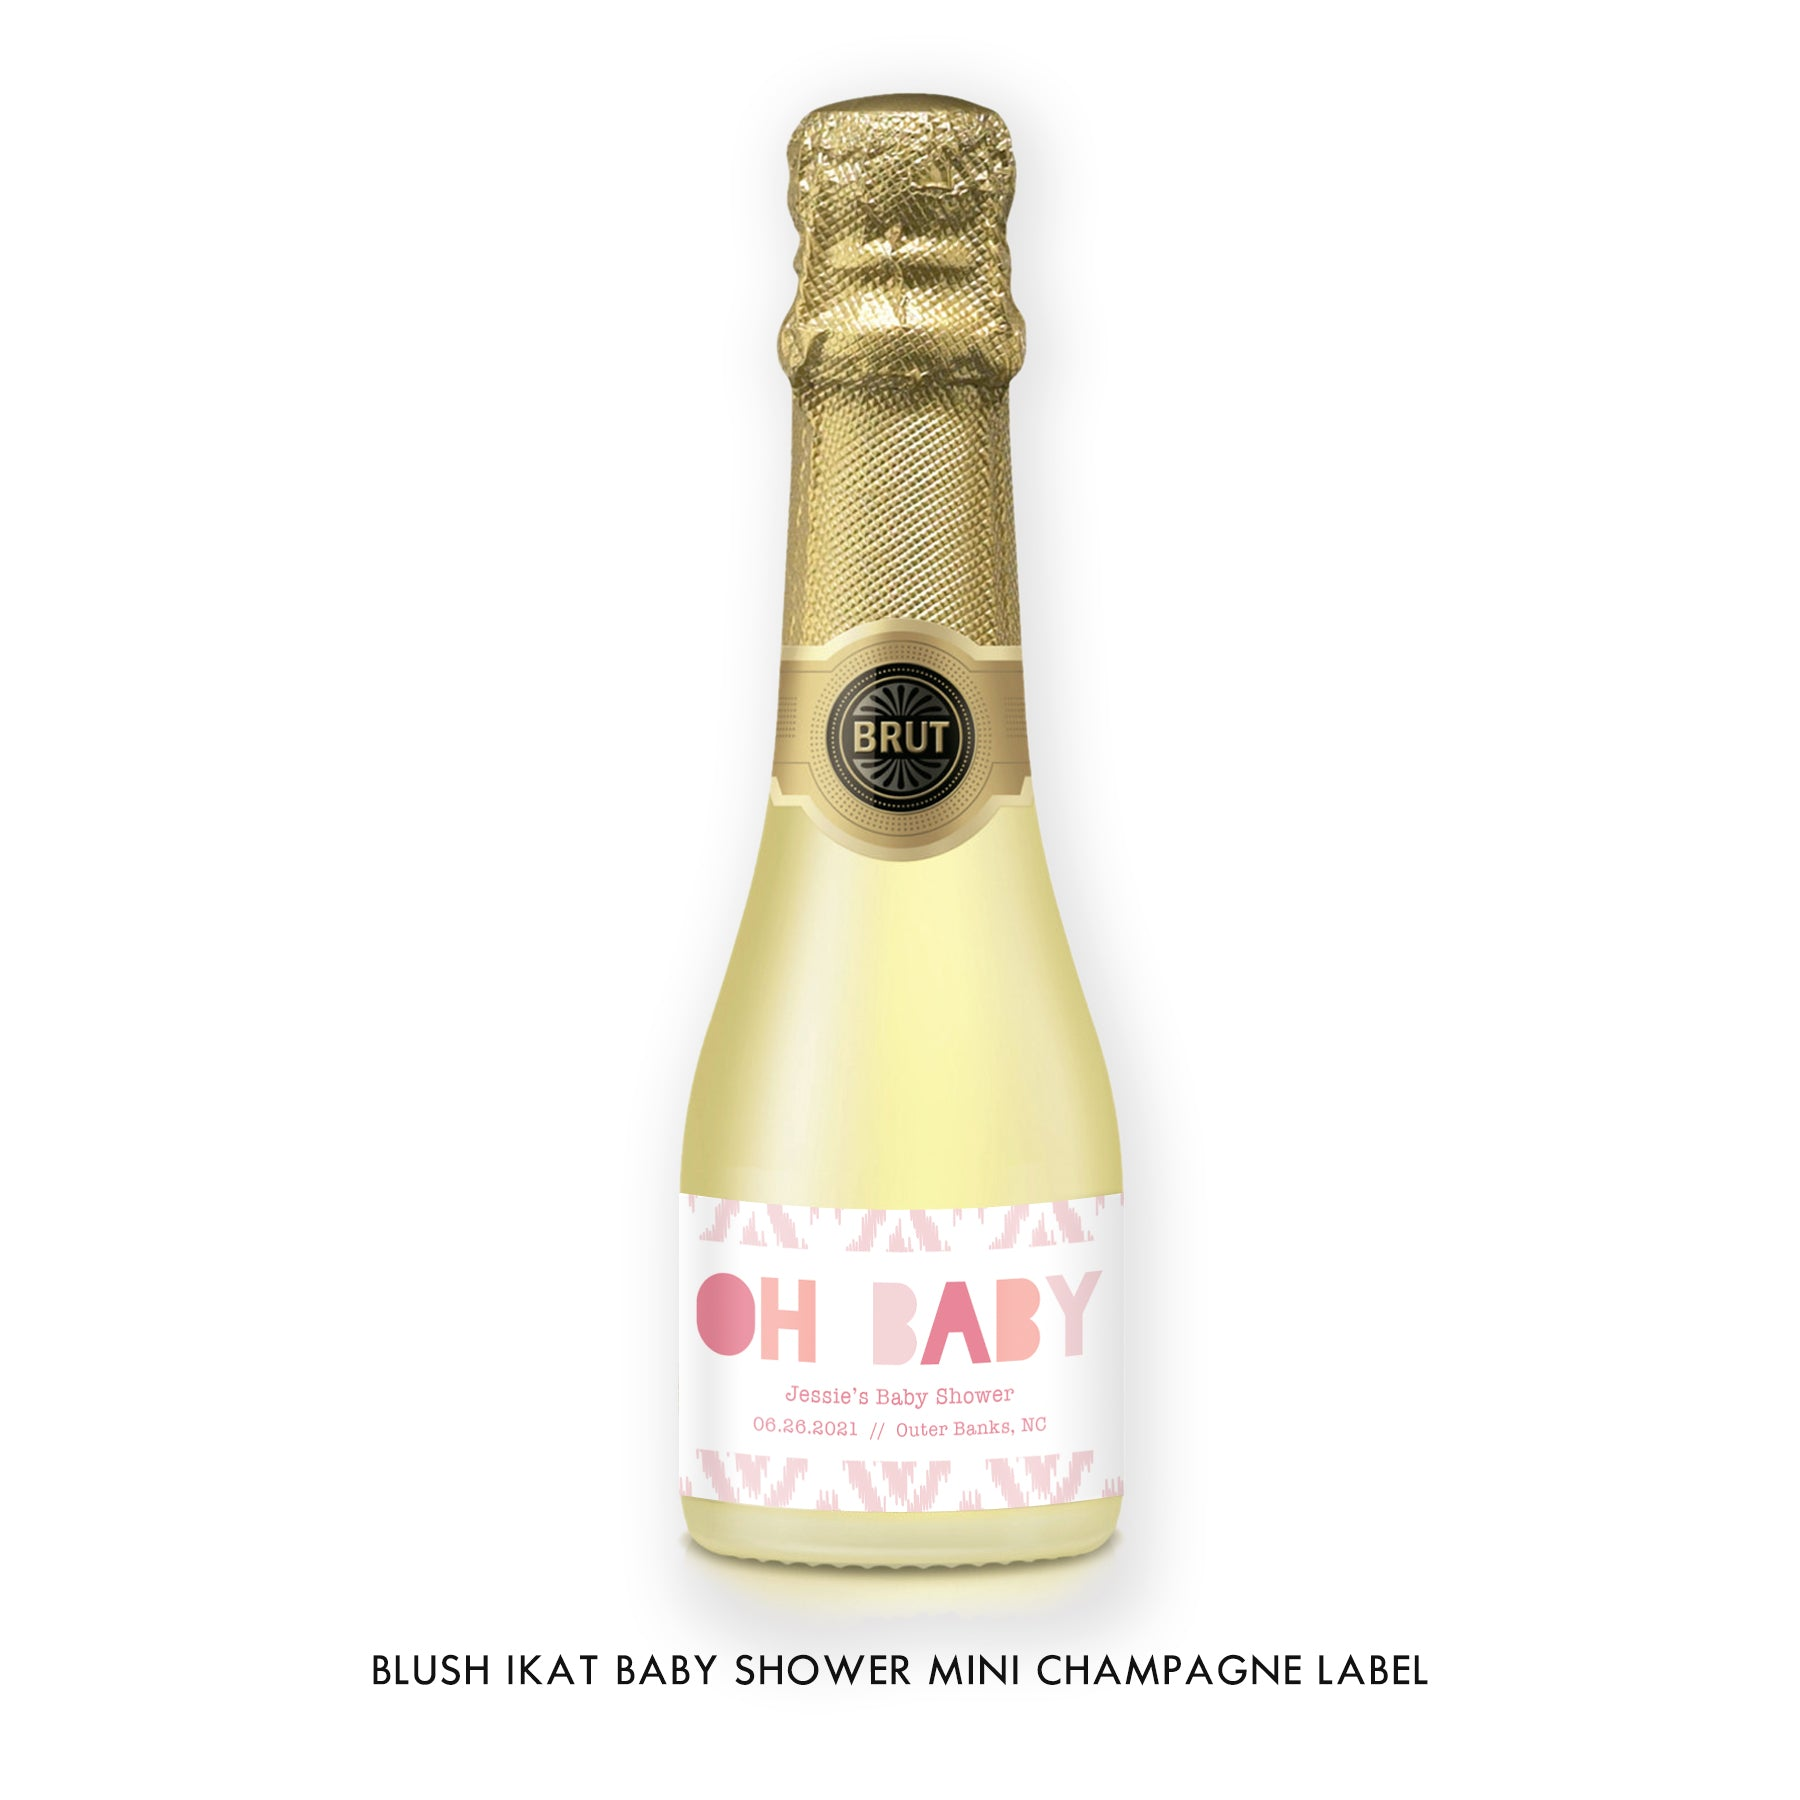 Blush Ikat Baby Shower Champagne Labels Coll. 12